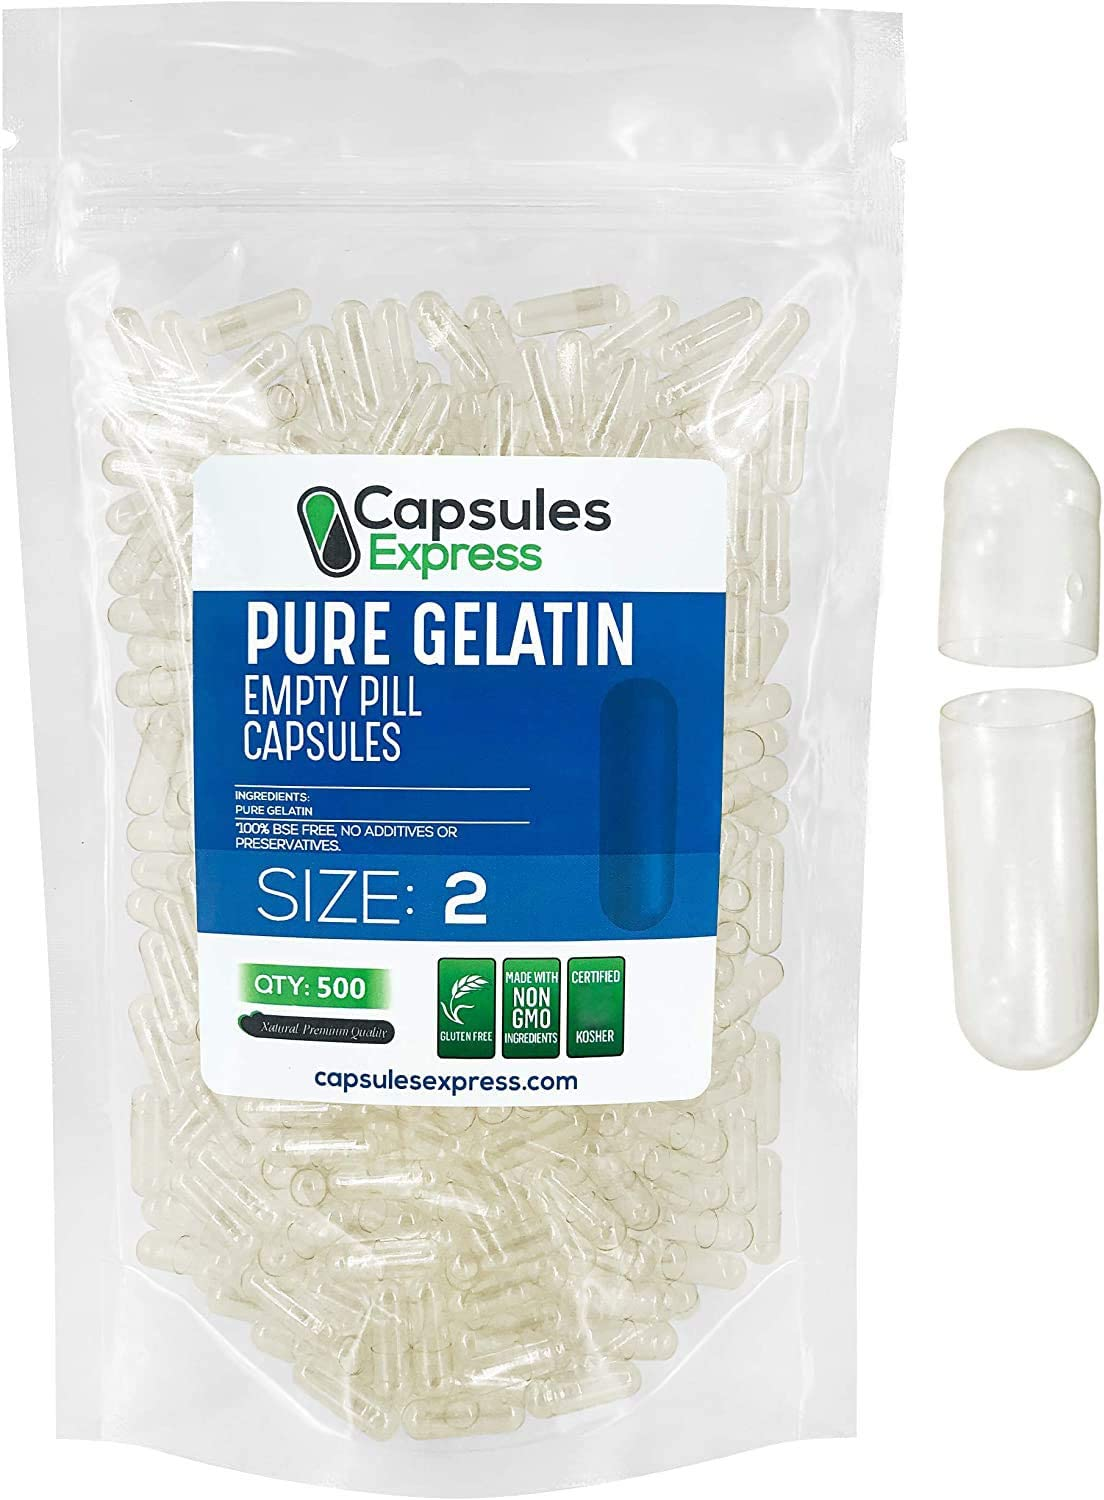 Capsules Express- Size 2 Clear Empty Gelatin Capsules 500 Count - Kosher and Halal - Pure Gelatin Pill Capsule - DIY Powder Filling